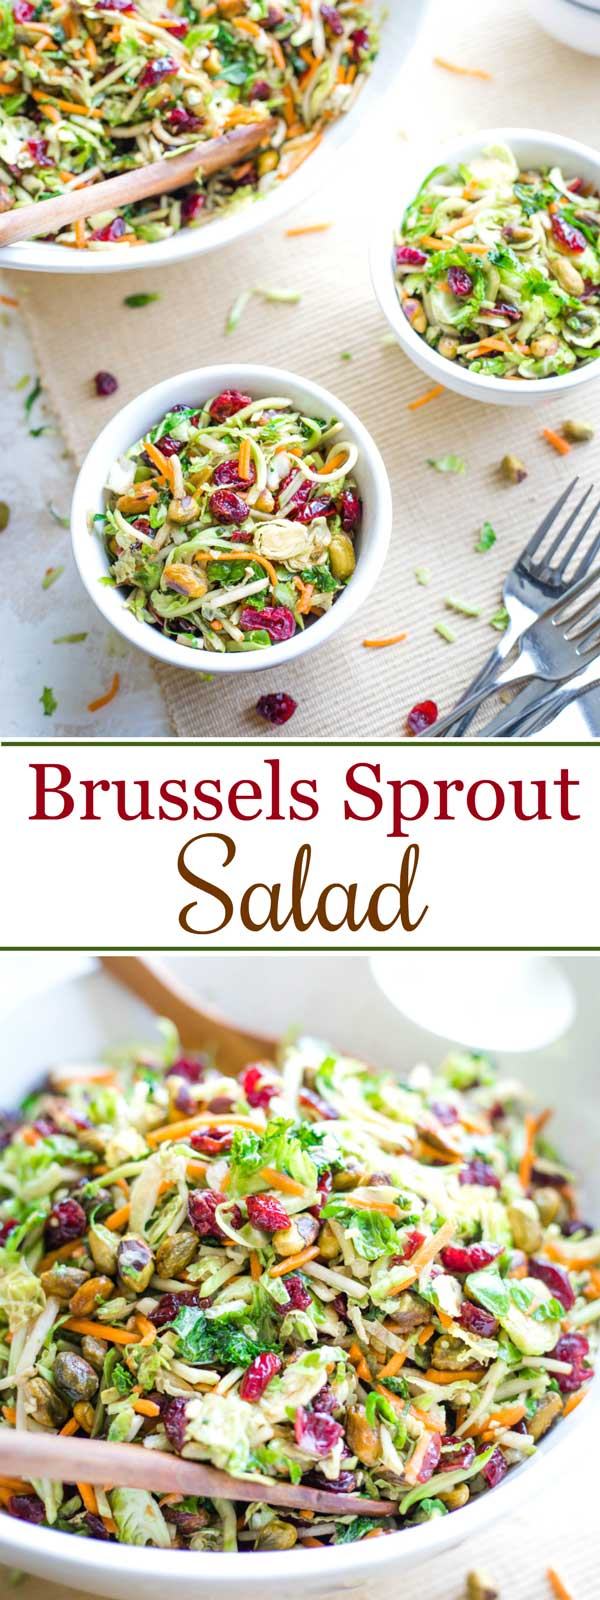 collage of two salad photos: one with Brussel sprout salad in individual serving bowl, and one with it in a large serving bowl